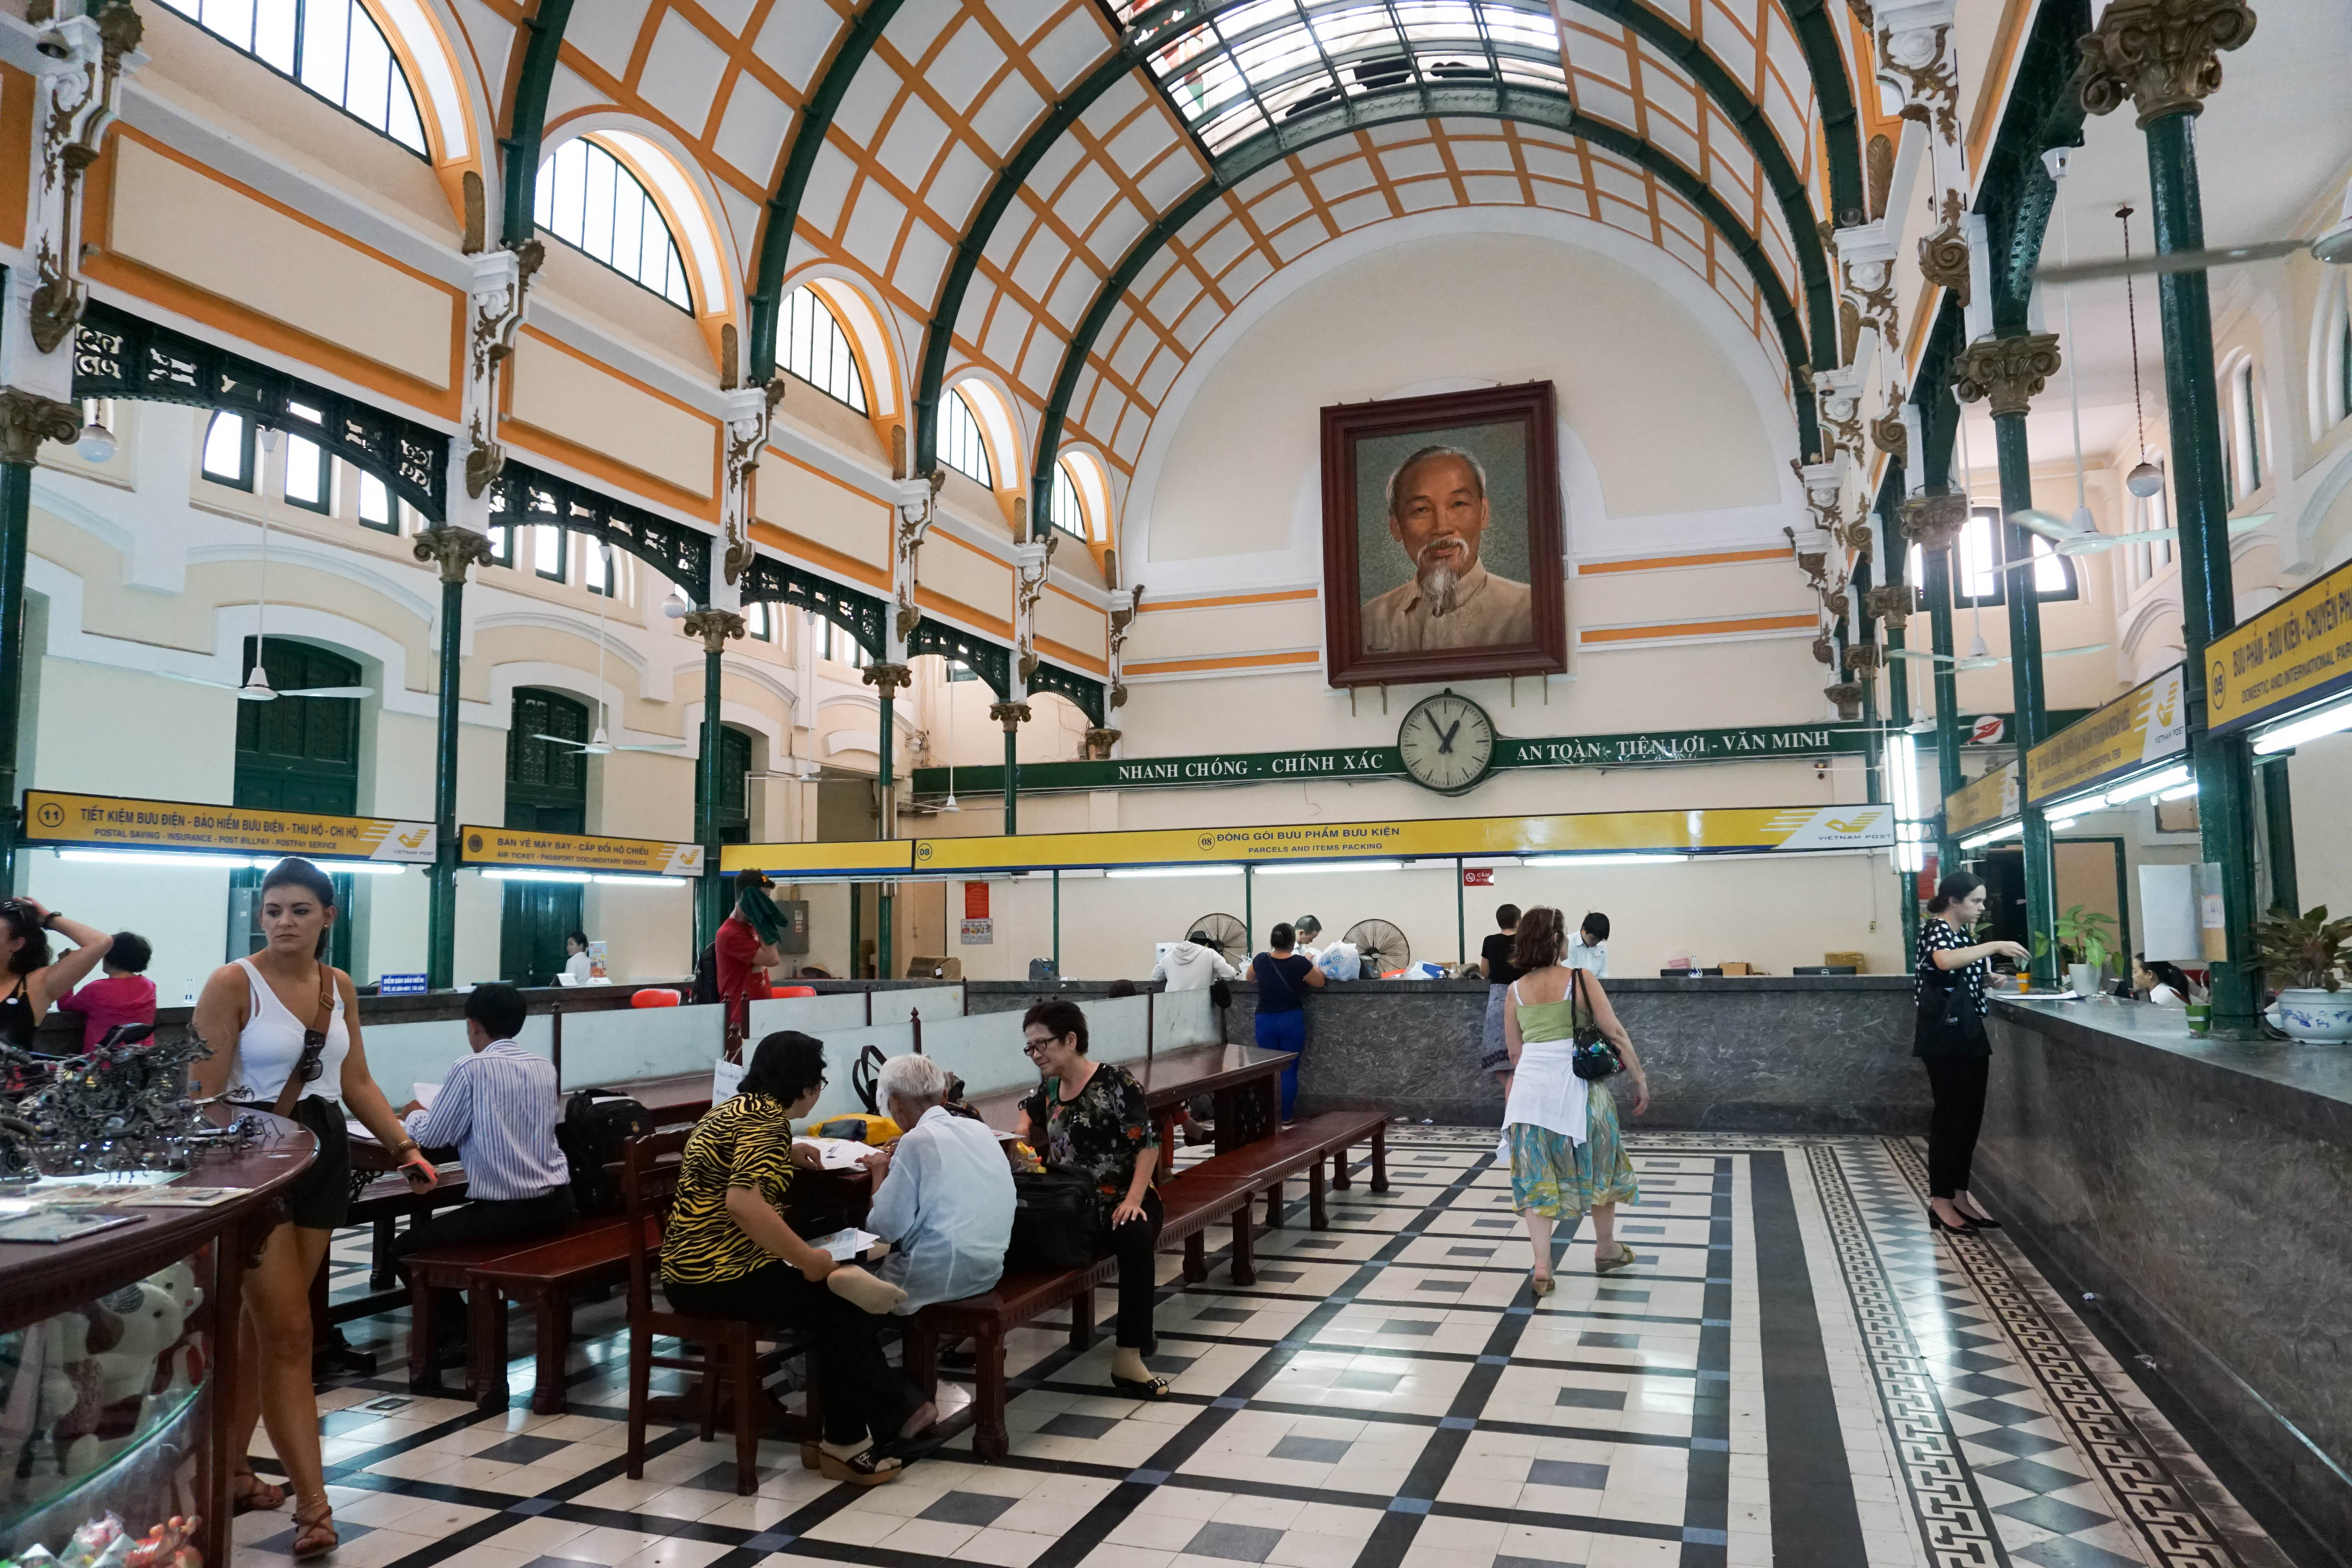 Wood Desks and Benches and the Local Legend at the Saigon Central Post Office. Ho Chi Minh City, Vietnam, April 2016.